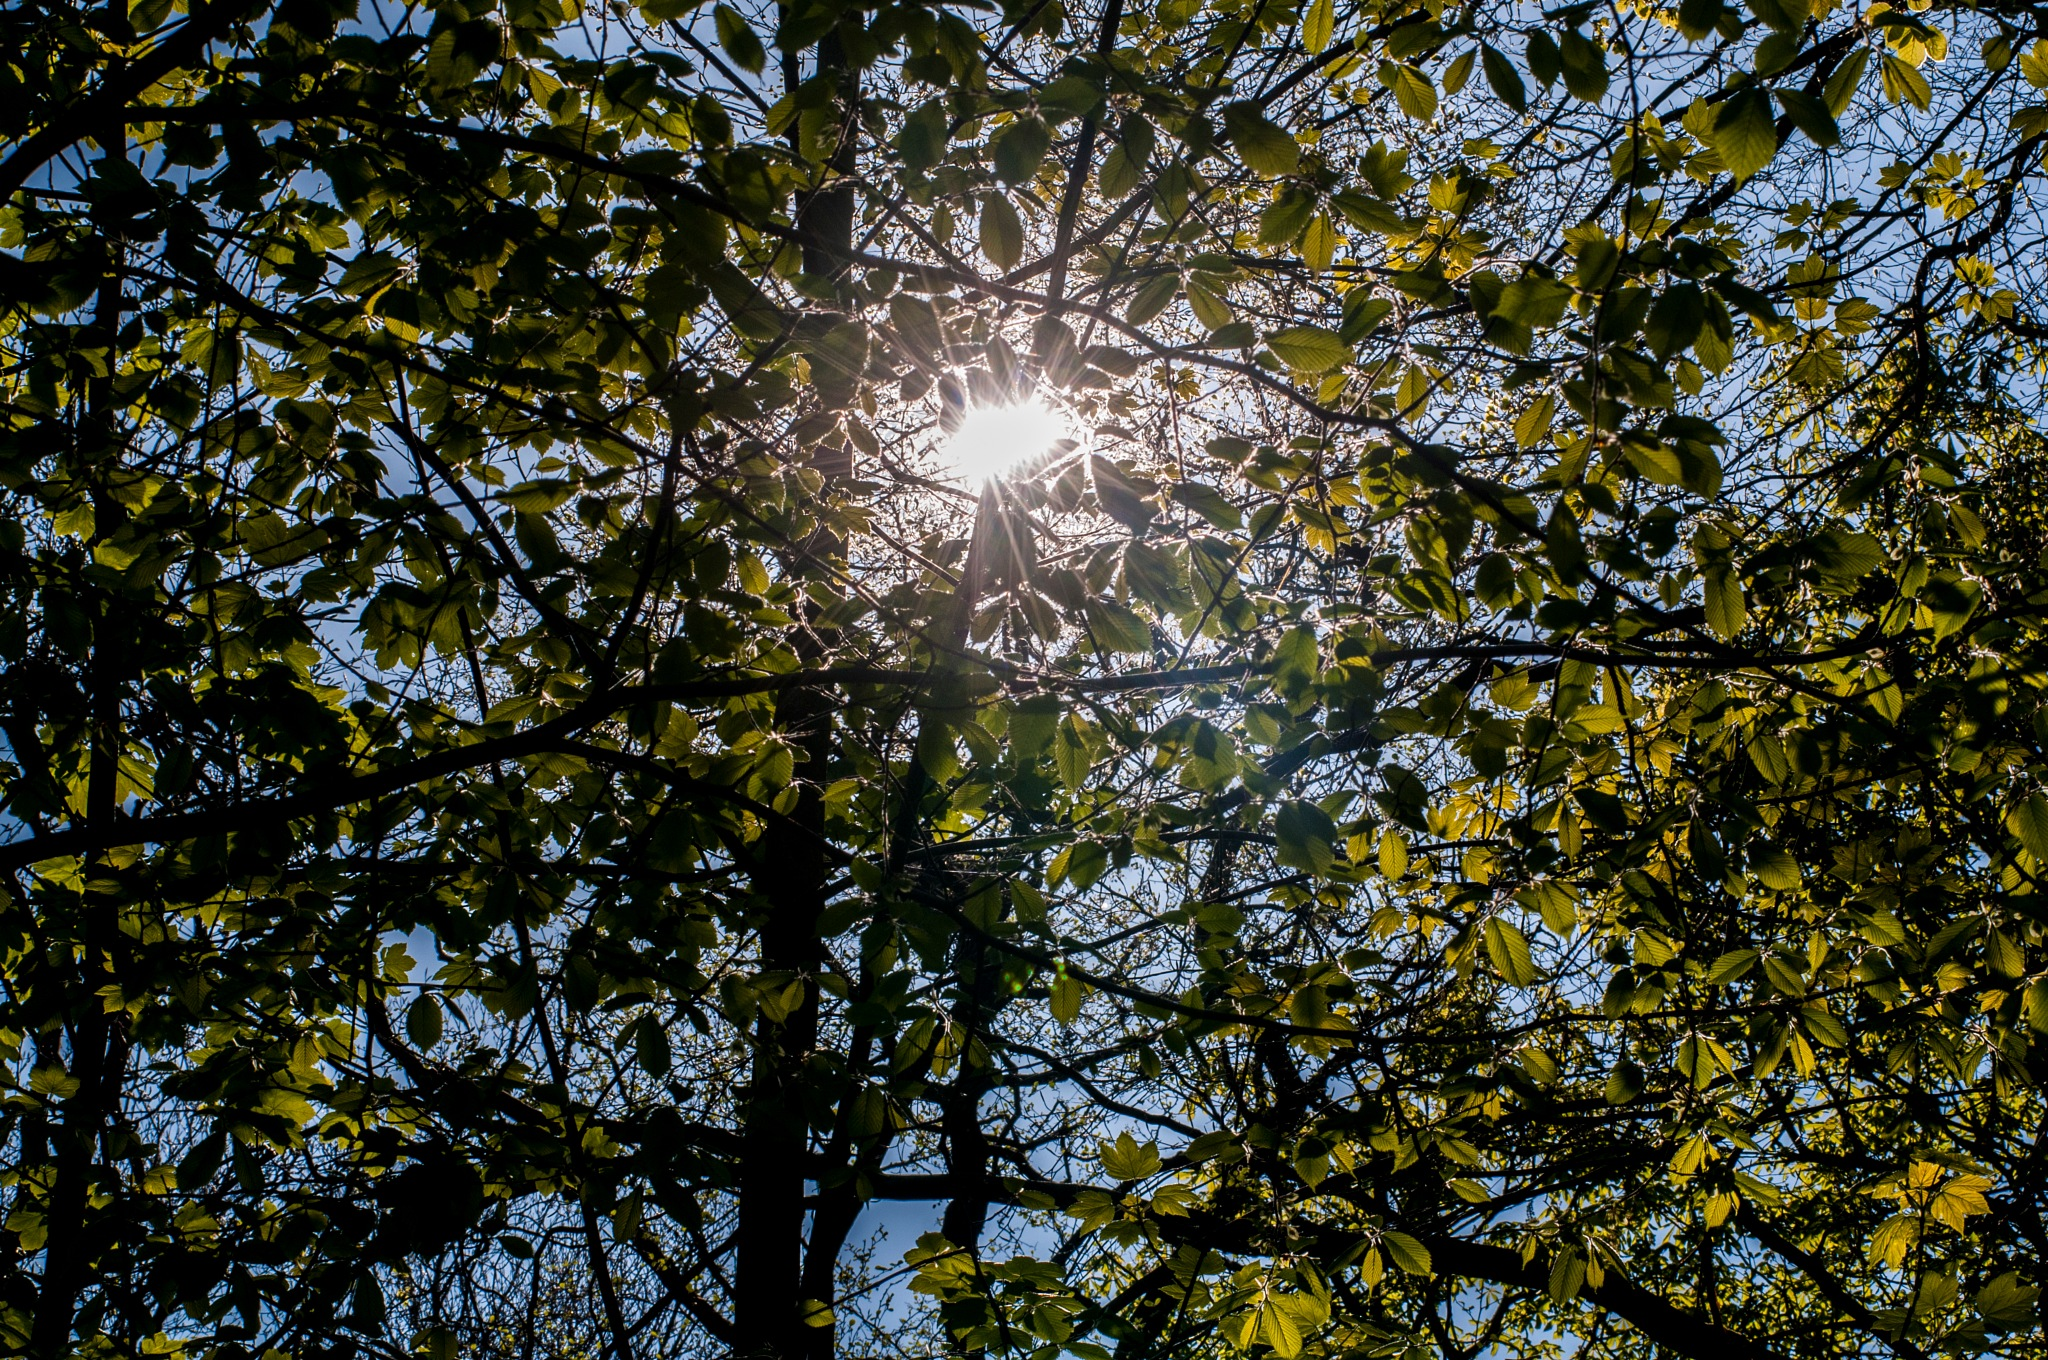 The sun seen through the leaves by Steen Skov